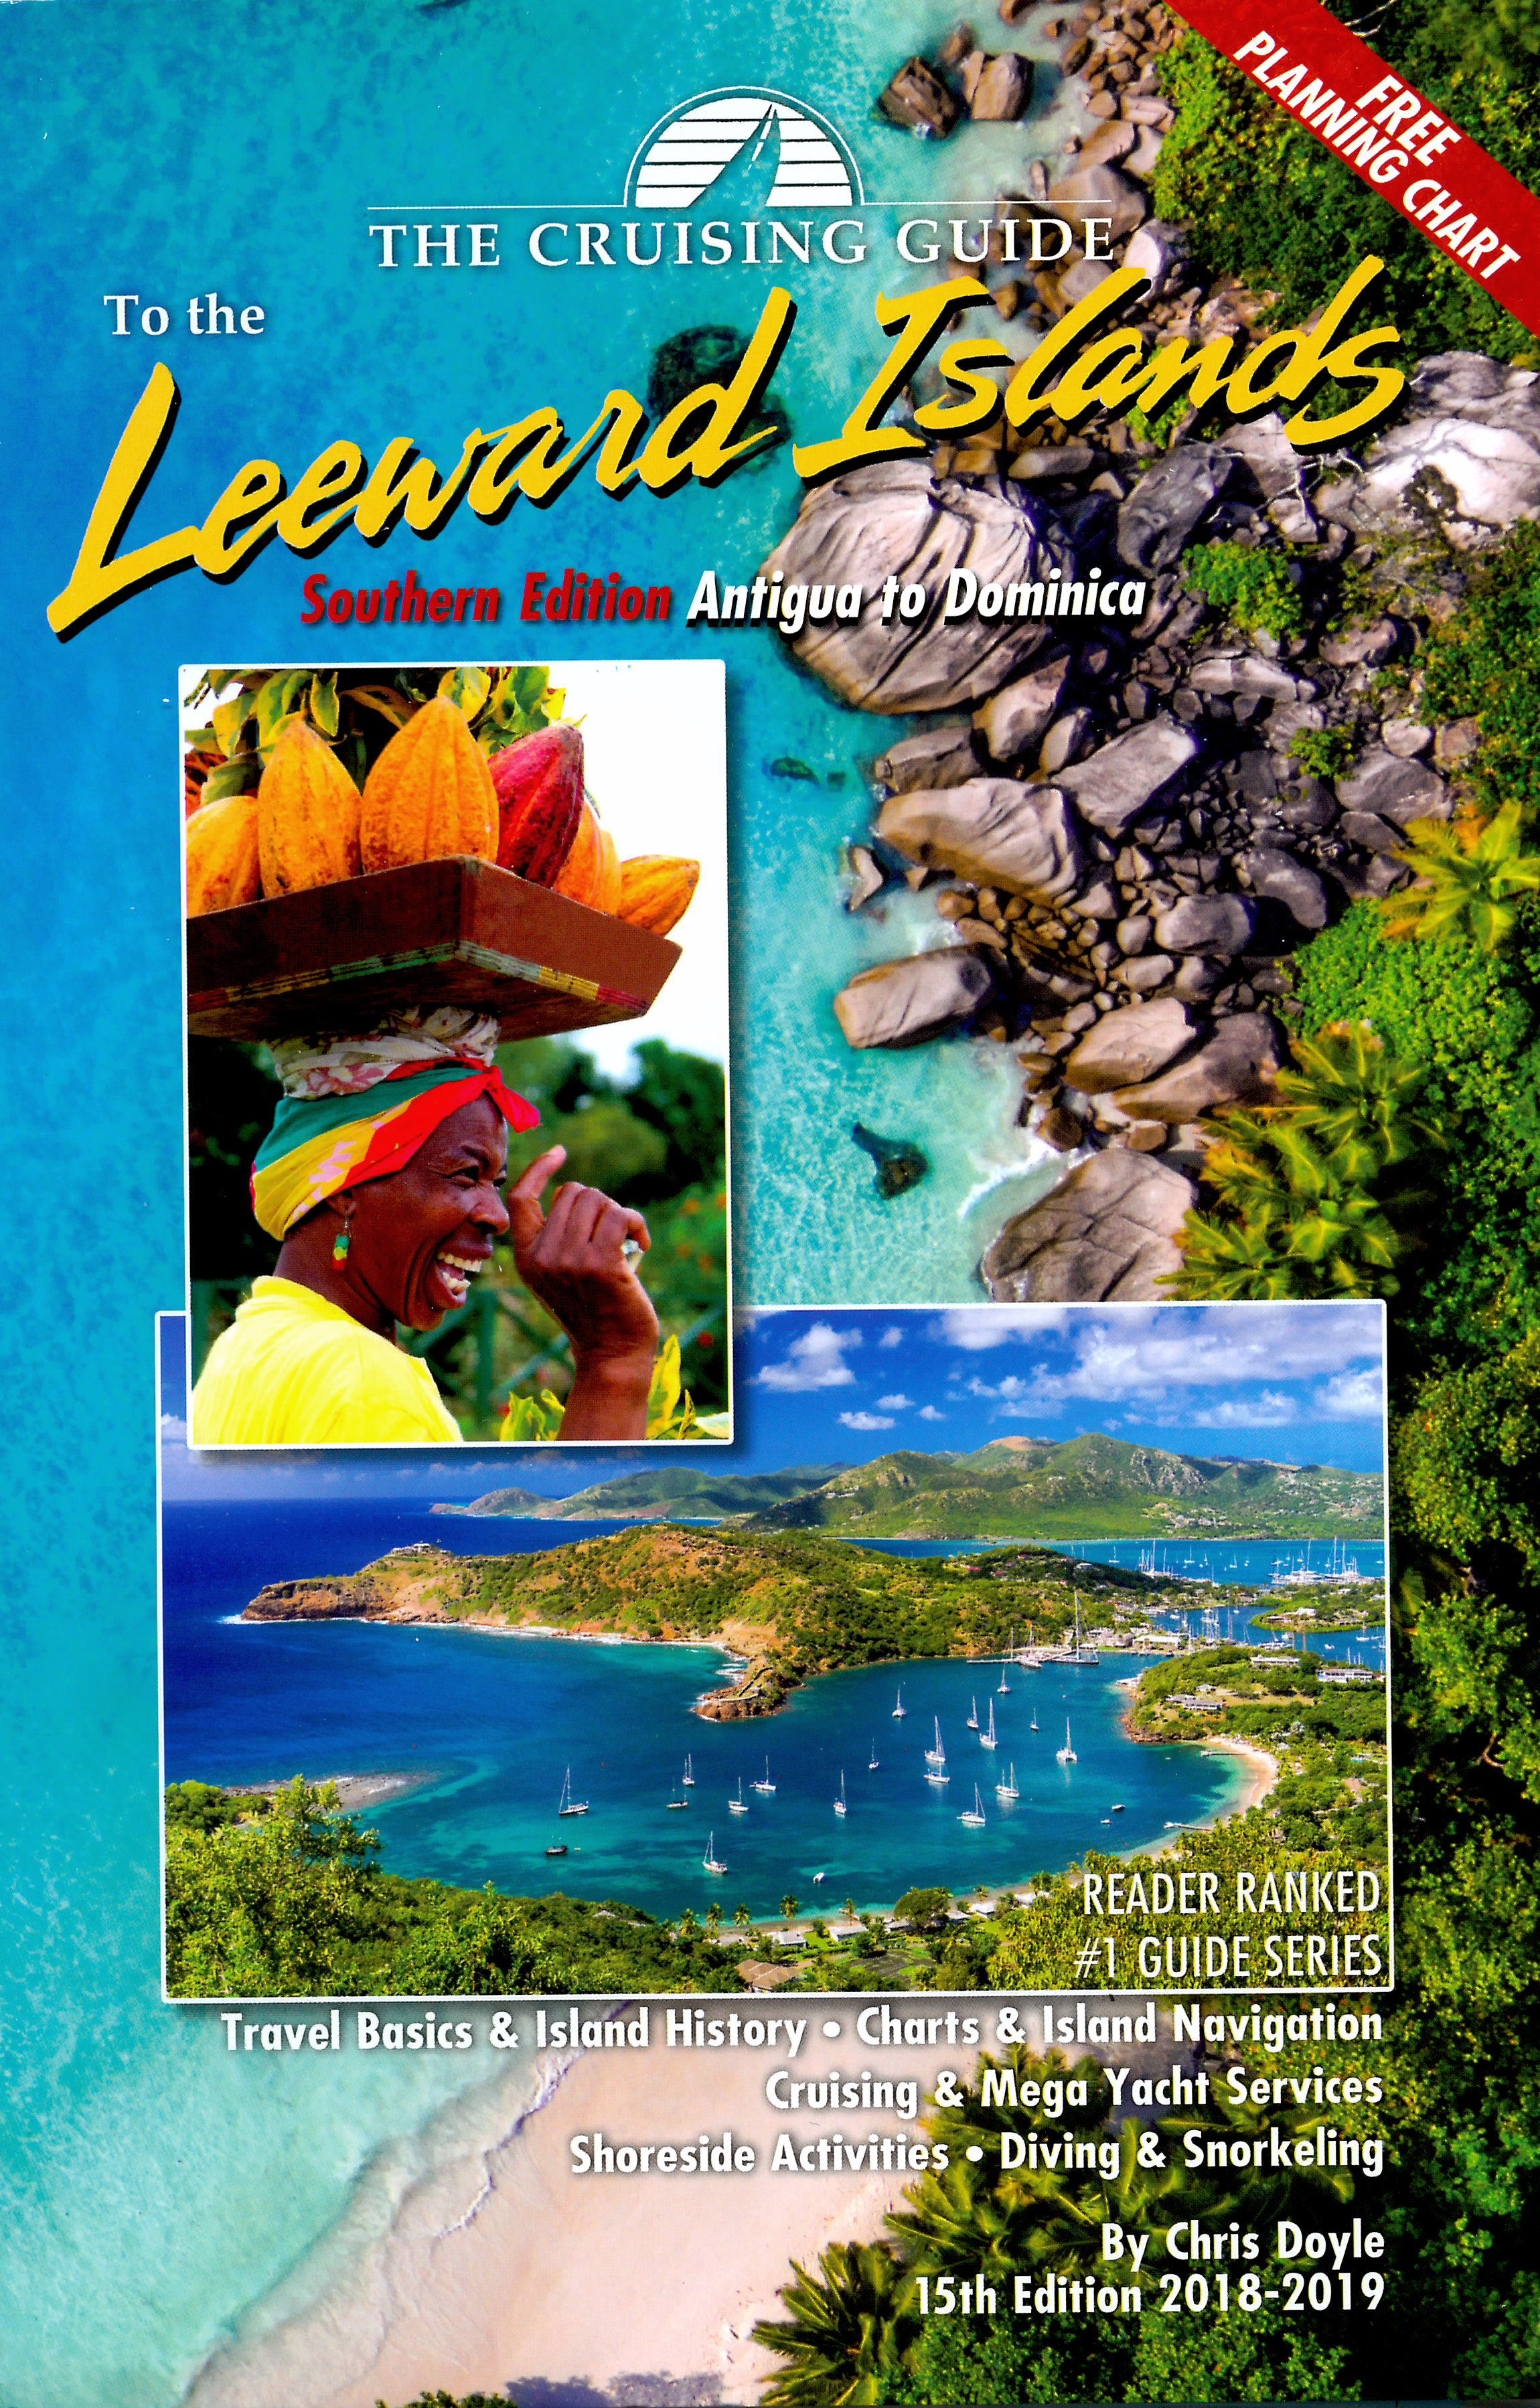 The Cruising Guide to the Southern Leeward Islands